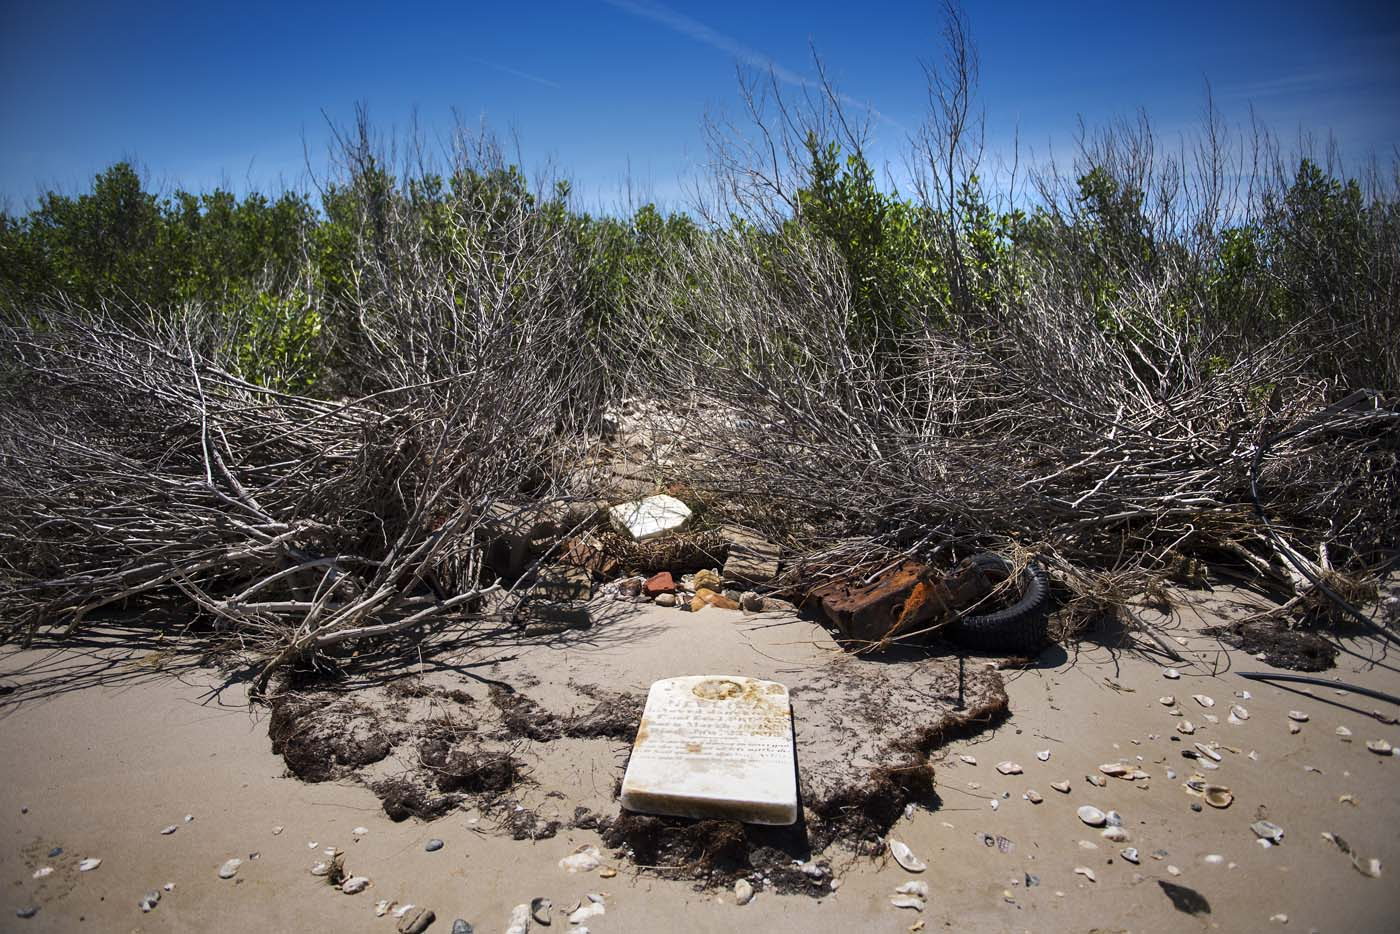 A grave stone rests on the beach where a cemetery once stood but has been washed away due to erosion in an area called Canaan in Tangier, Virginia, May 16, 2017, where climate change and rising sea levels threaten the inhabitants of the slowly sinking island. Now measuring 1.2 square miles, Tangier Island has lost two-thirds of its landmass since 1850. If nothing is done to stop the erosion, it may disappear completely in the next 40 years. / AFP PHOTO / JIM WATSON